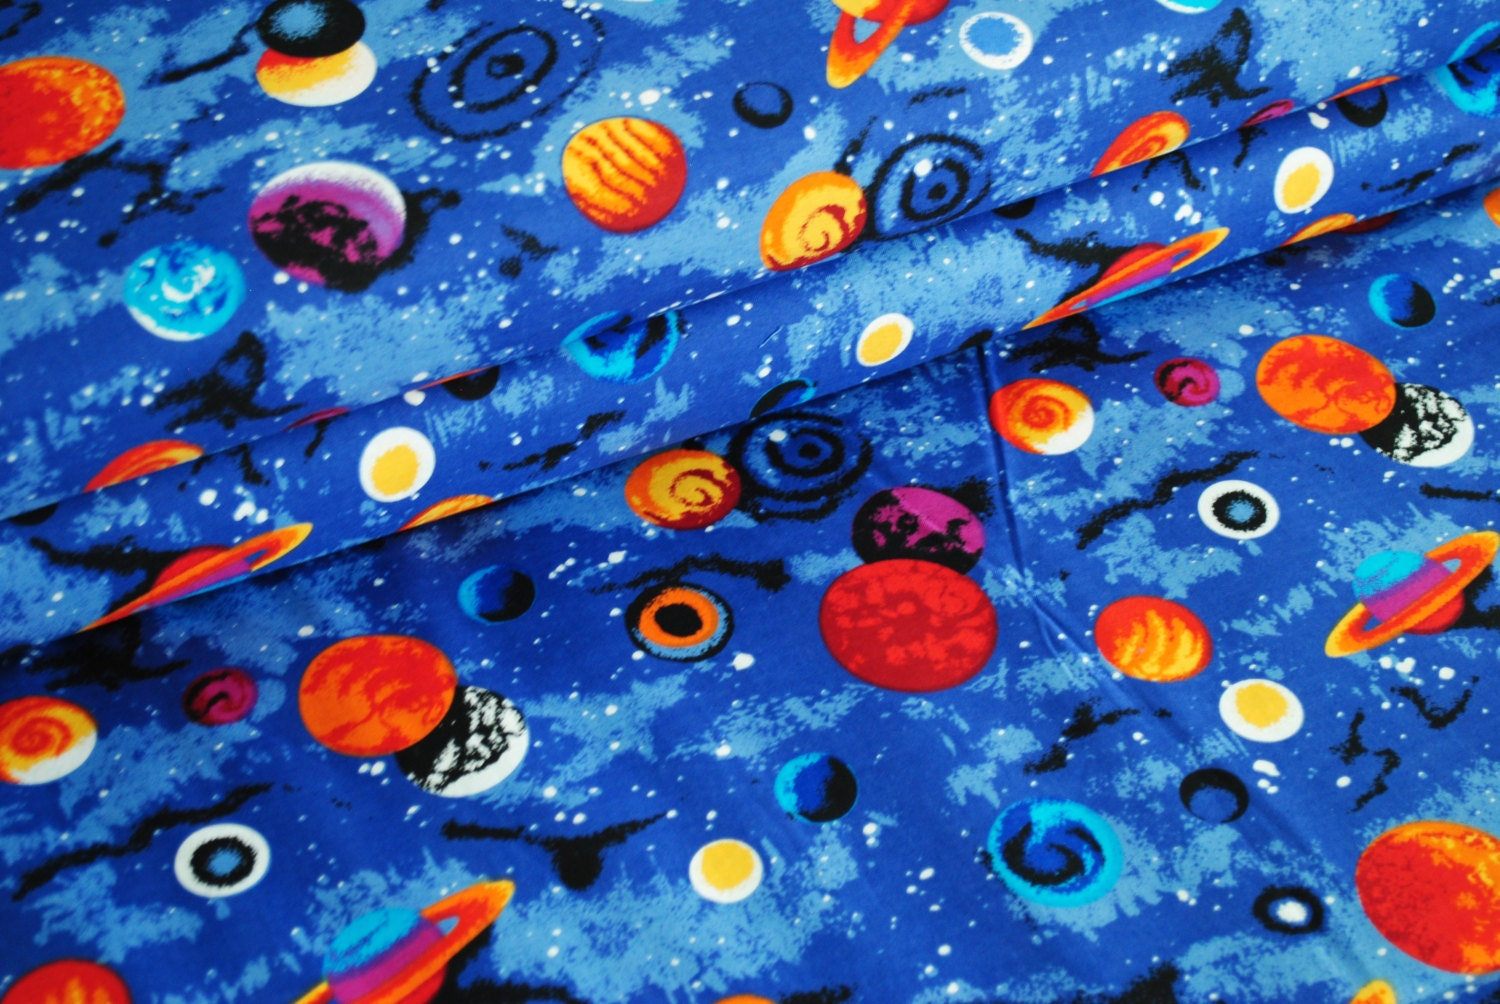 Universe and planets cotton woven fabric for Space fabric by the yard